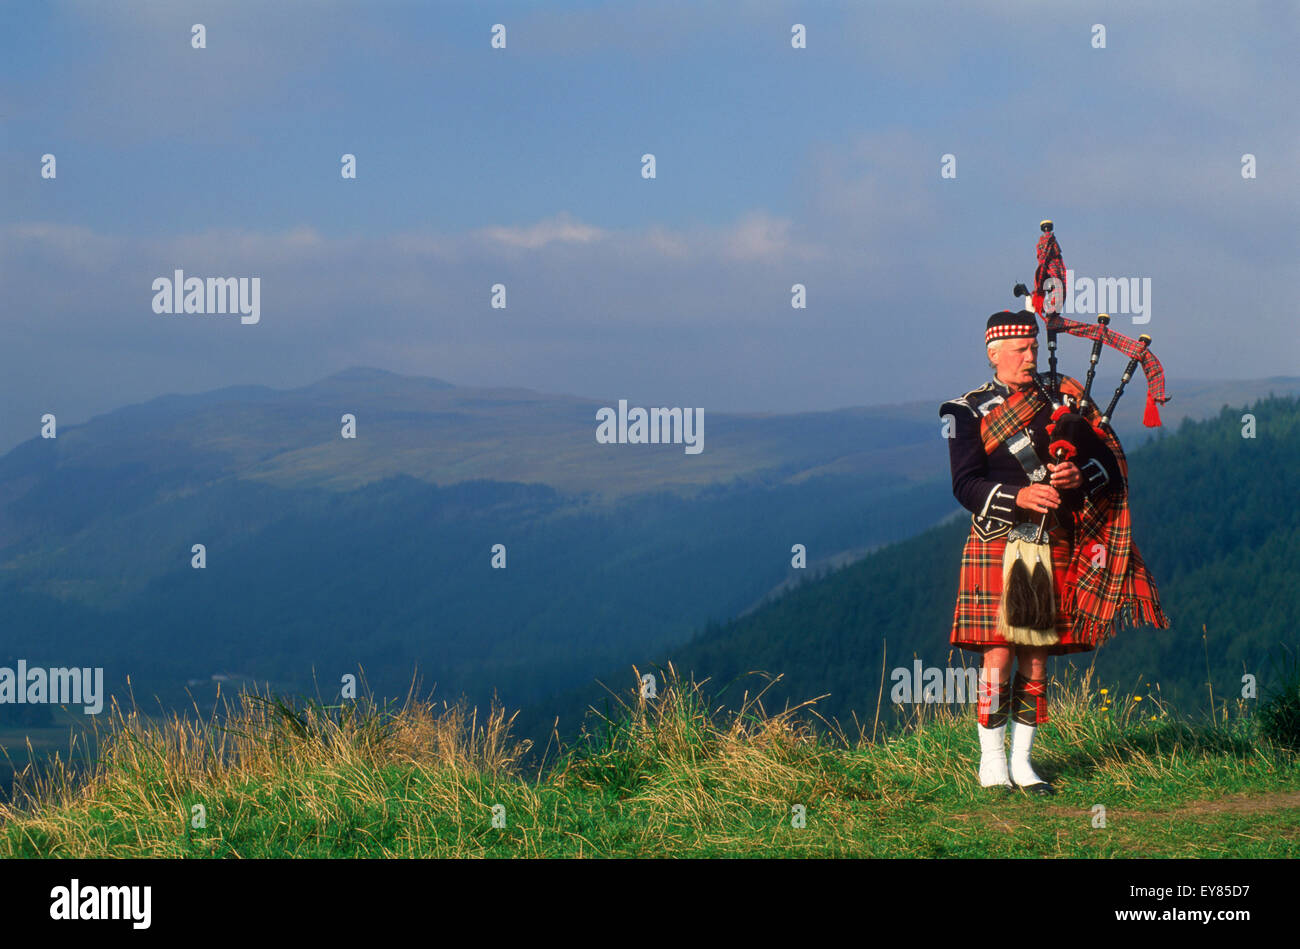 Bagpiper at Loch Broom in Scottish highlands - Stock Image